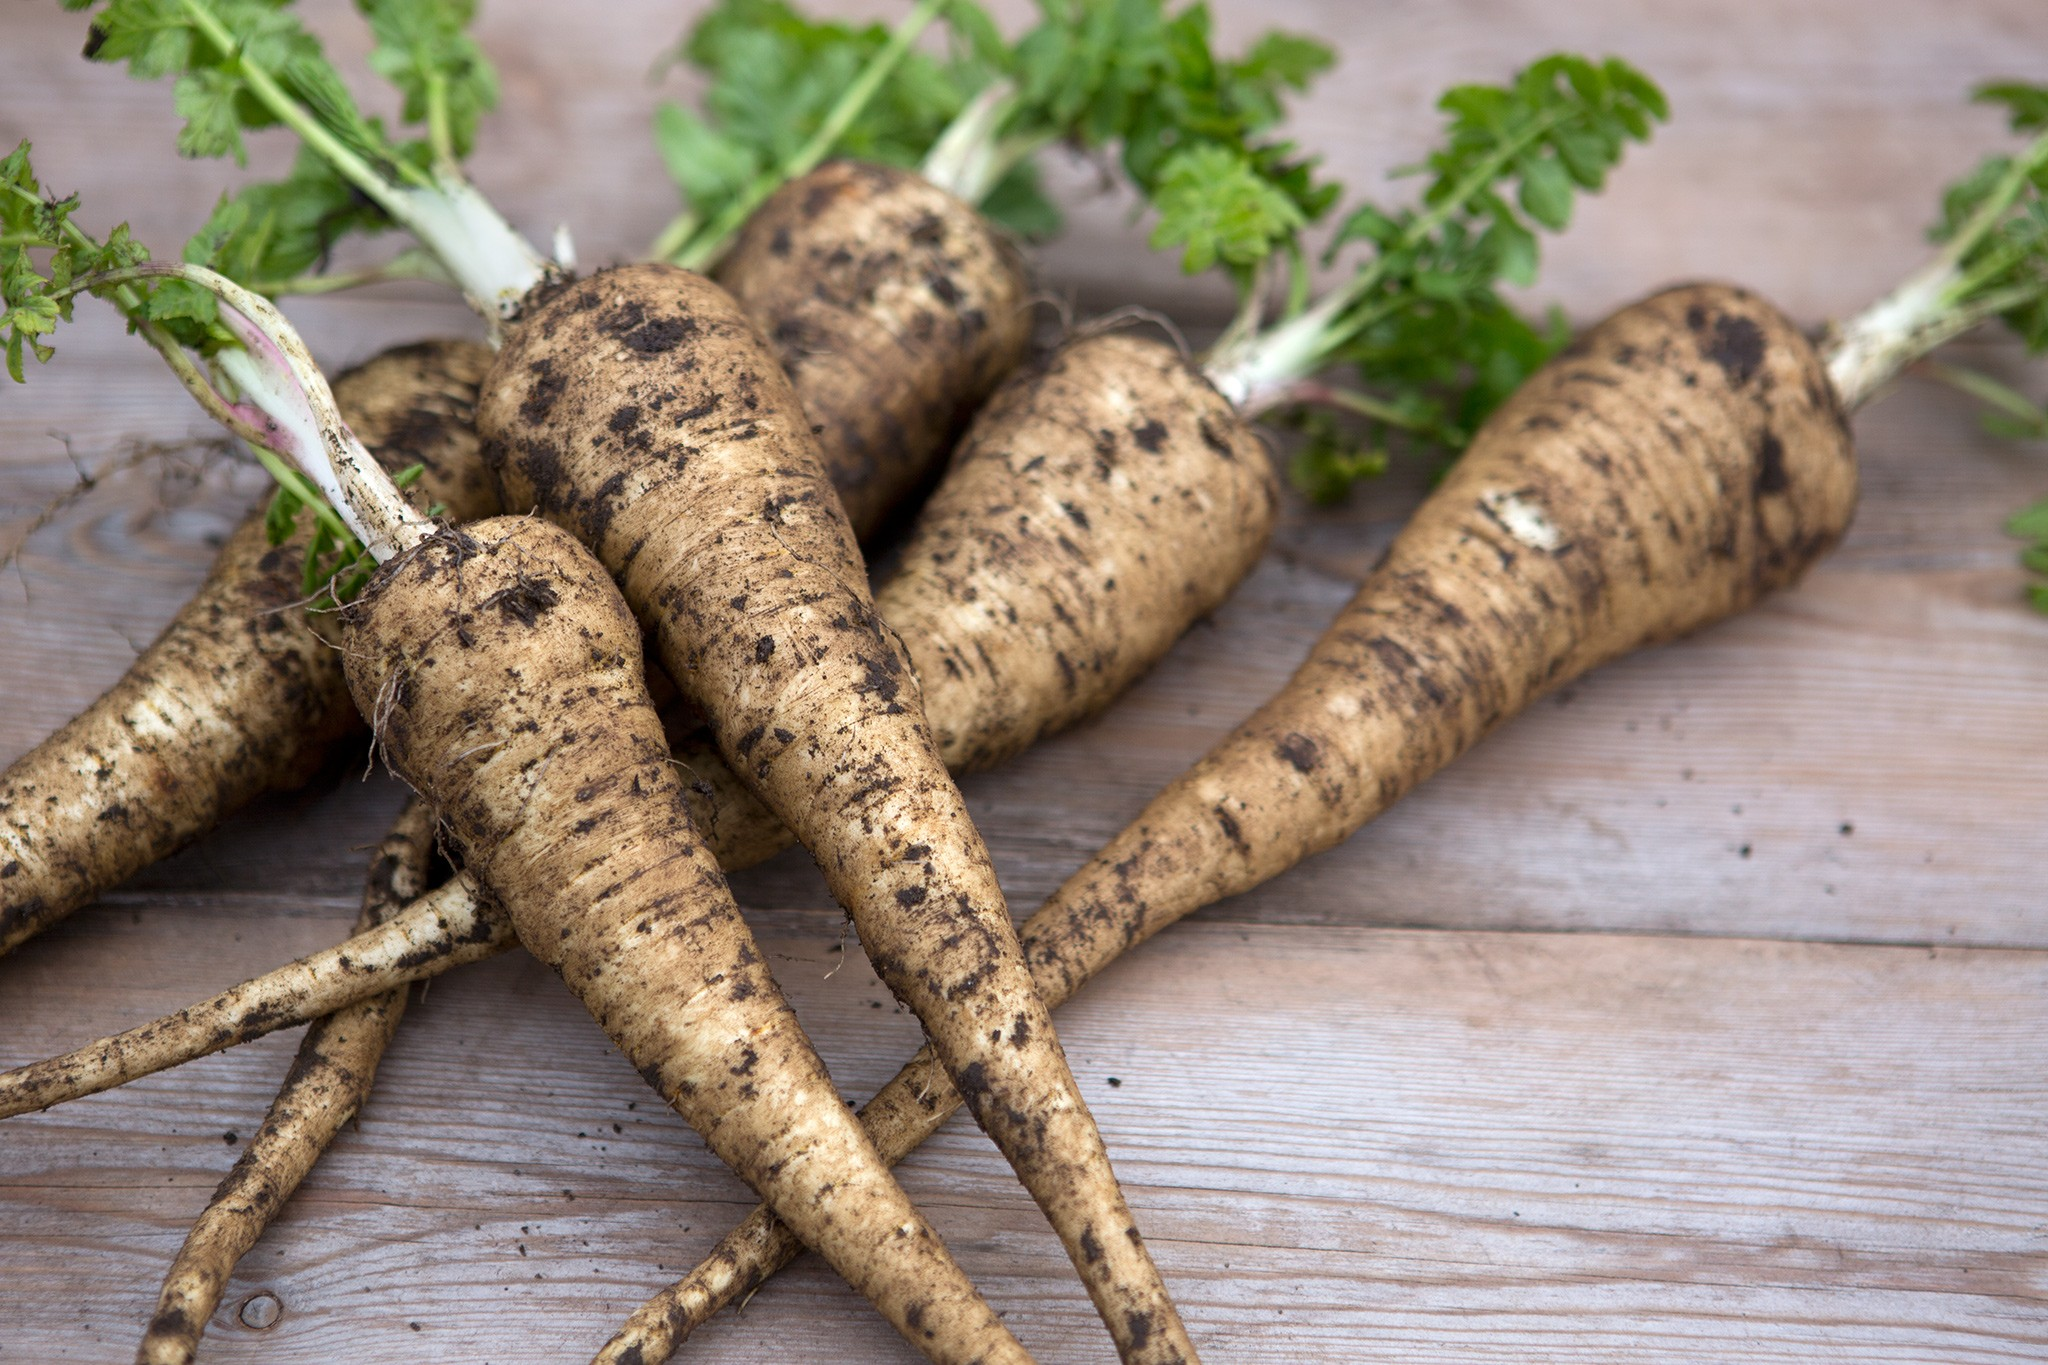 Picked harvested parsnips